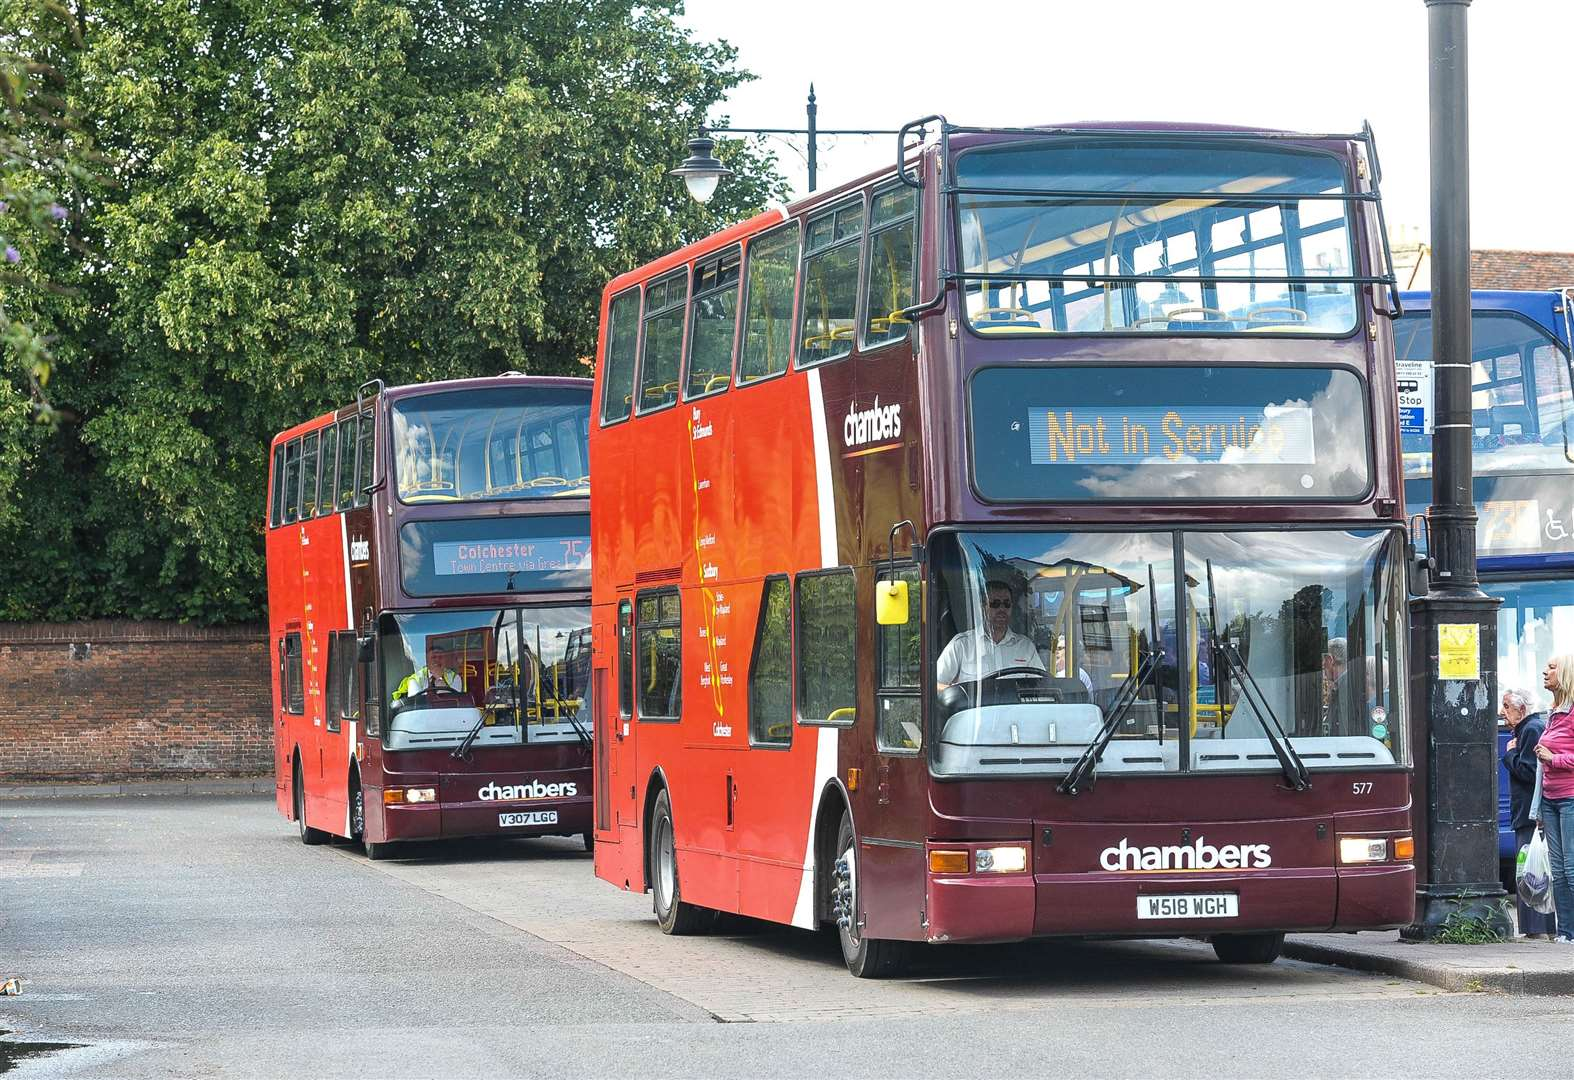 Bus users voice concerns as Chambers plans changes to key routes to and from Sudbury